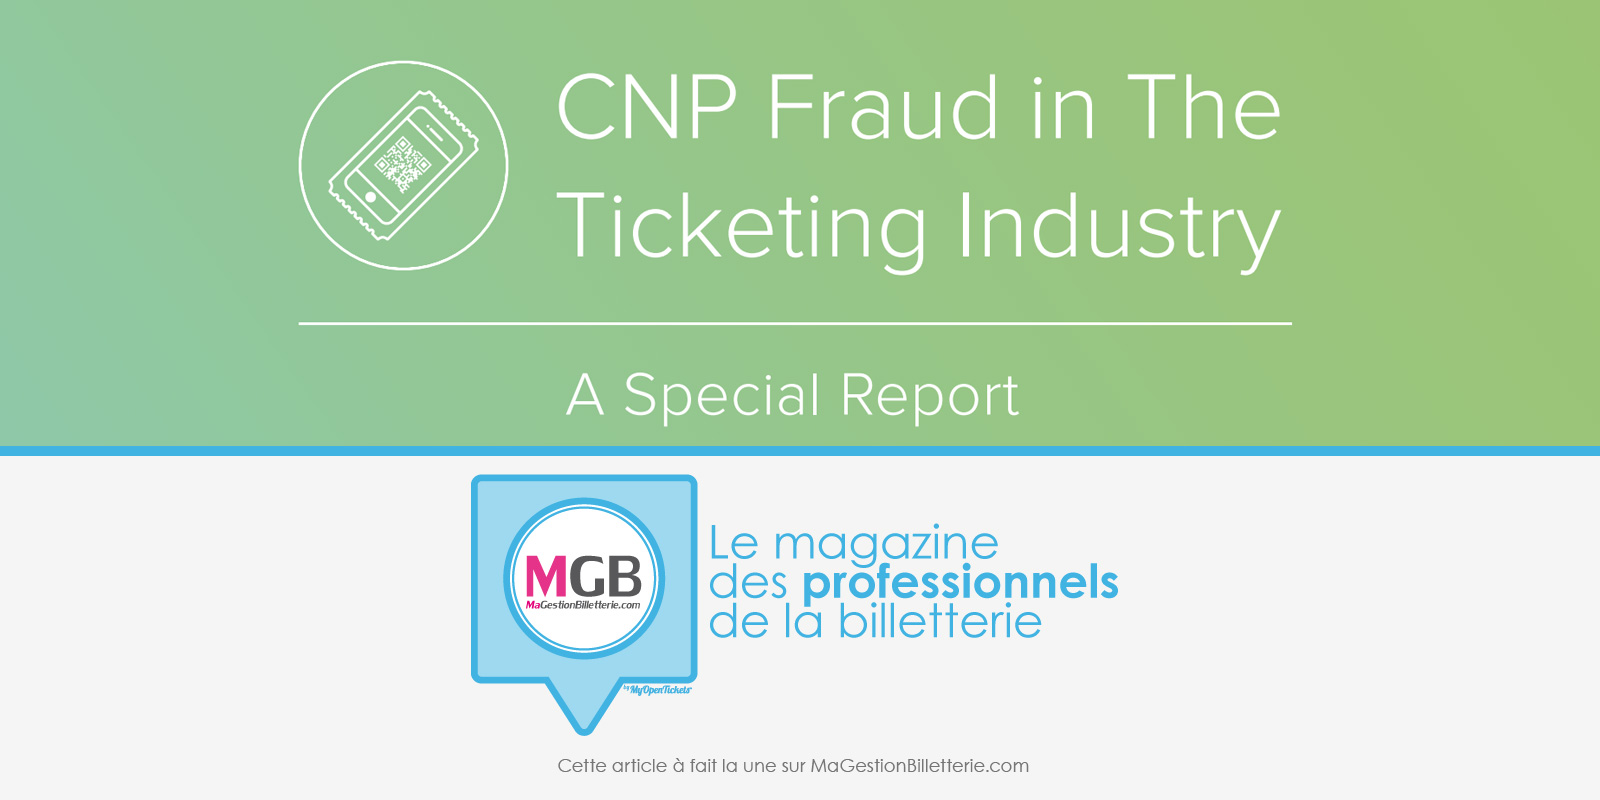 rapport-fraud-ticketing-us-une4